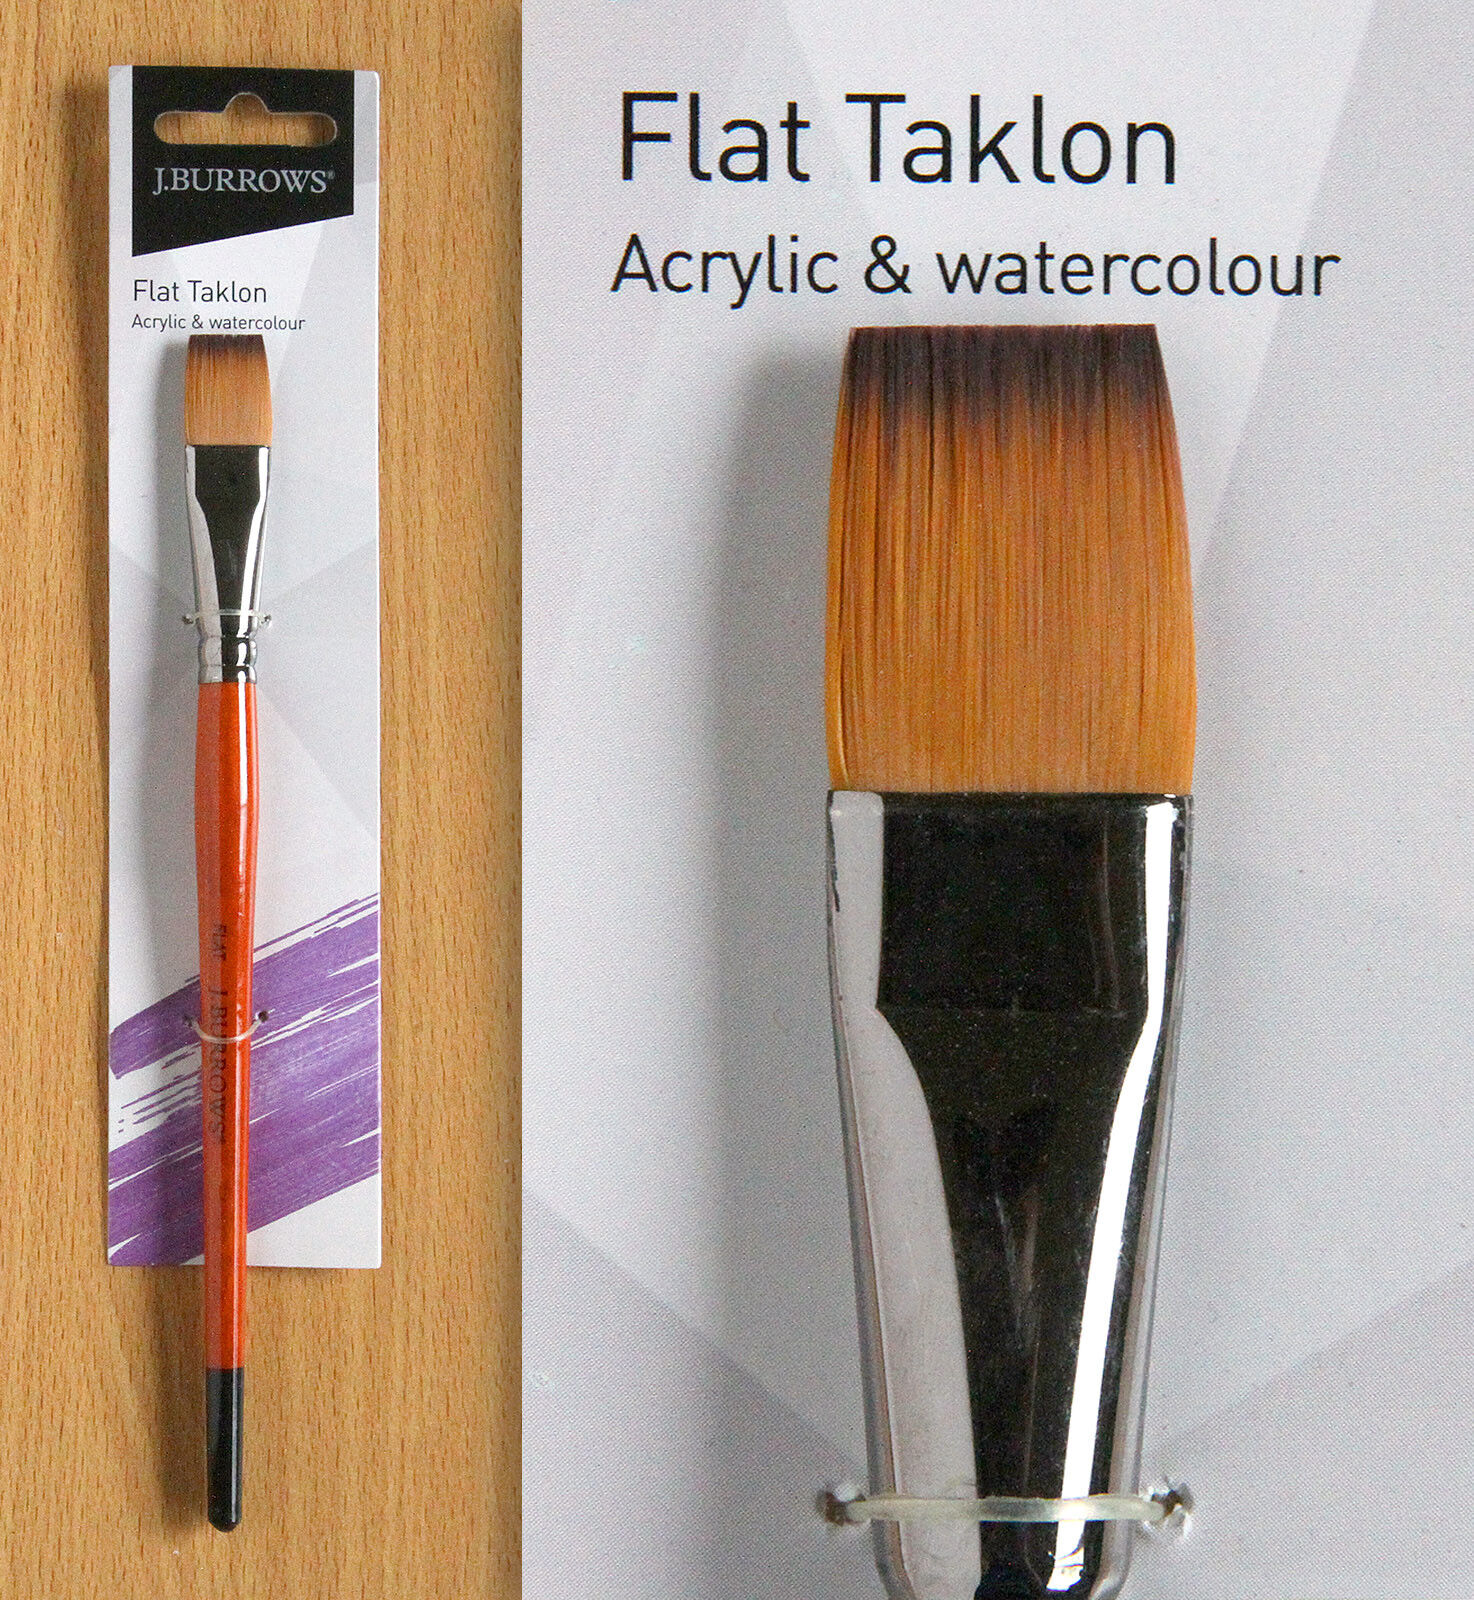 flat taklon paint brush size 14 j burrows free postage 9 95